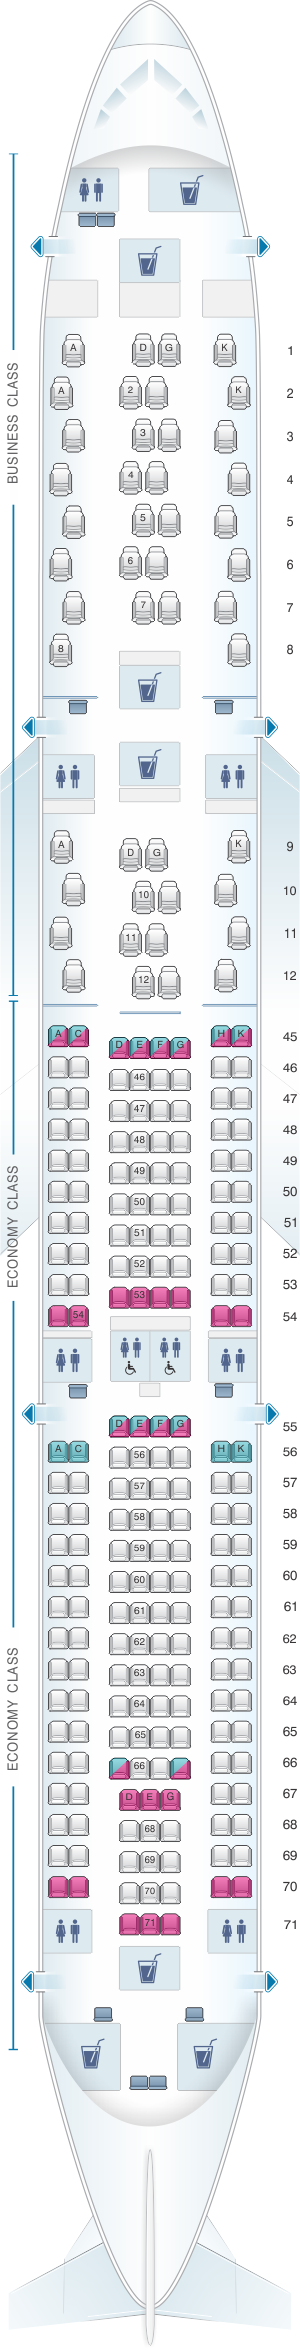 Seat map for South African Airways Airbus A330 300